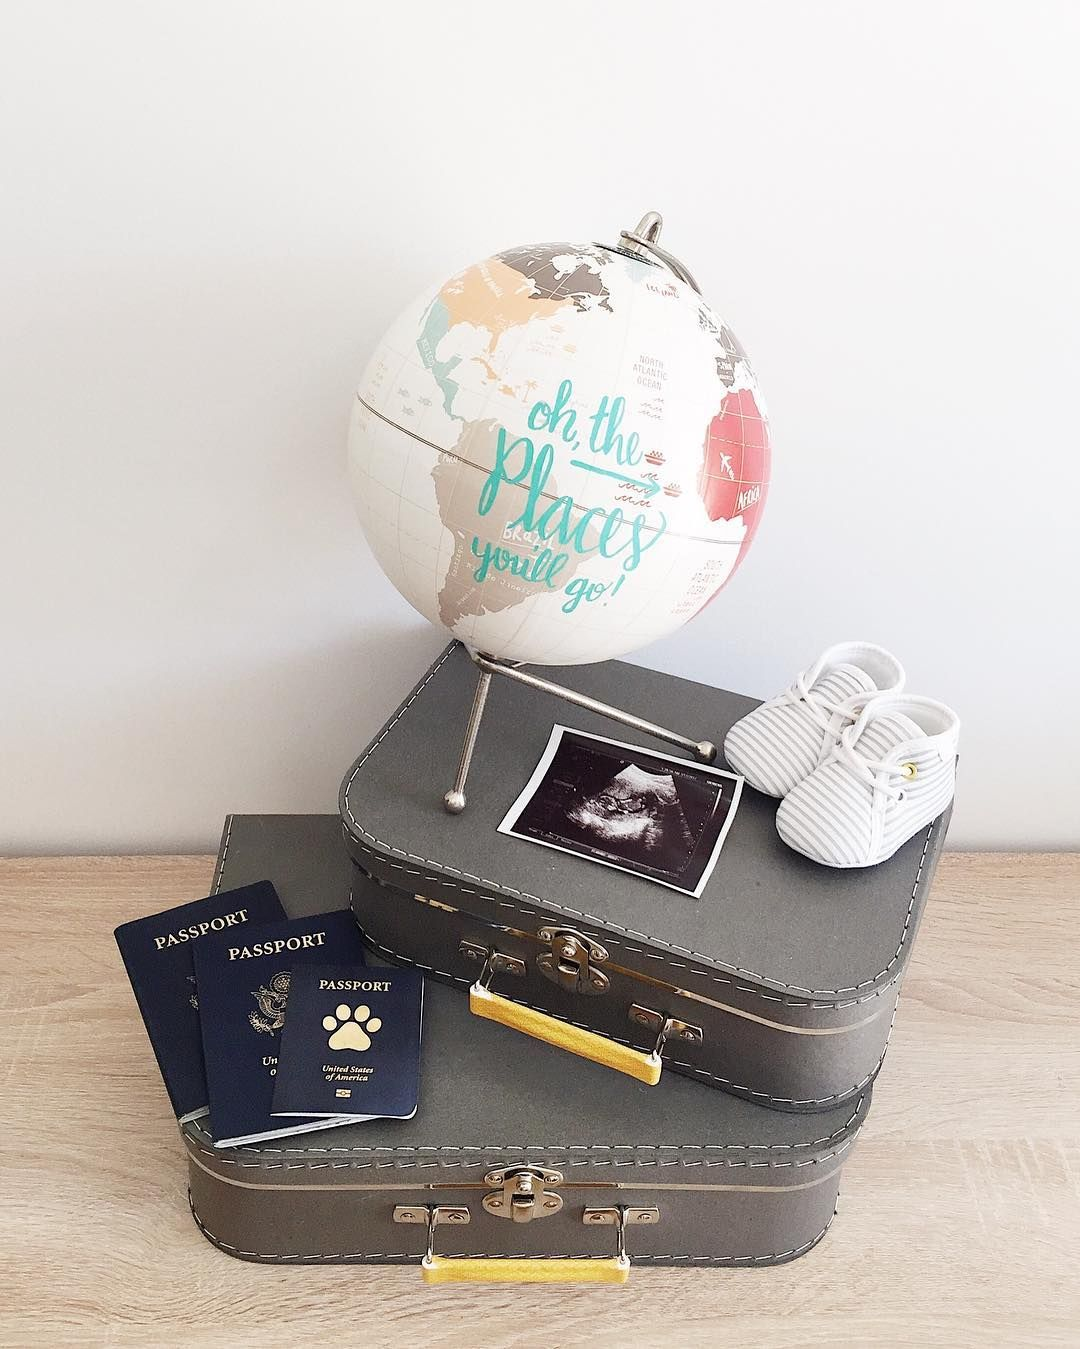 Traveling While Pregnant; How to Survive in Your 1st Trimester